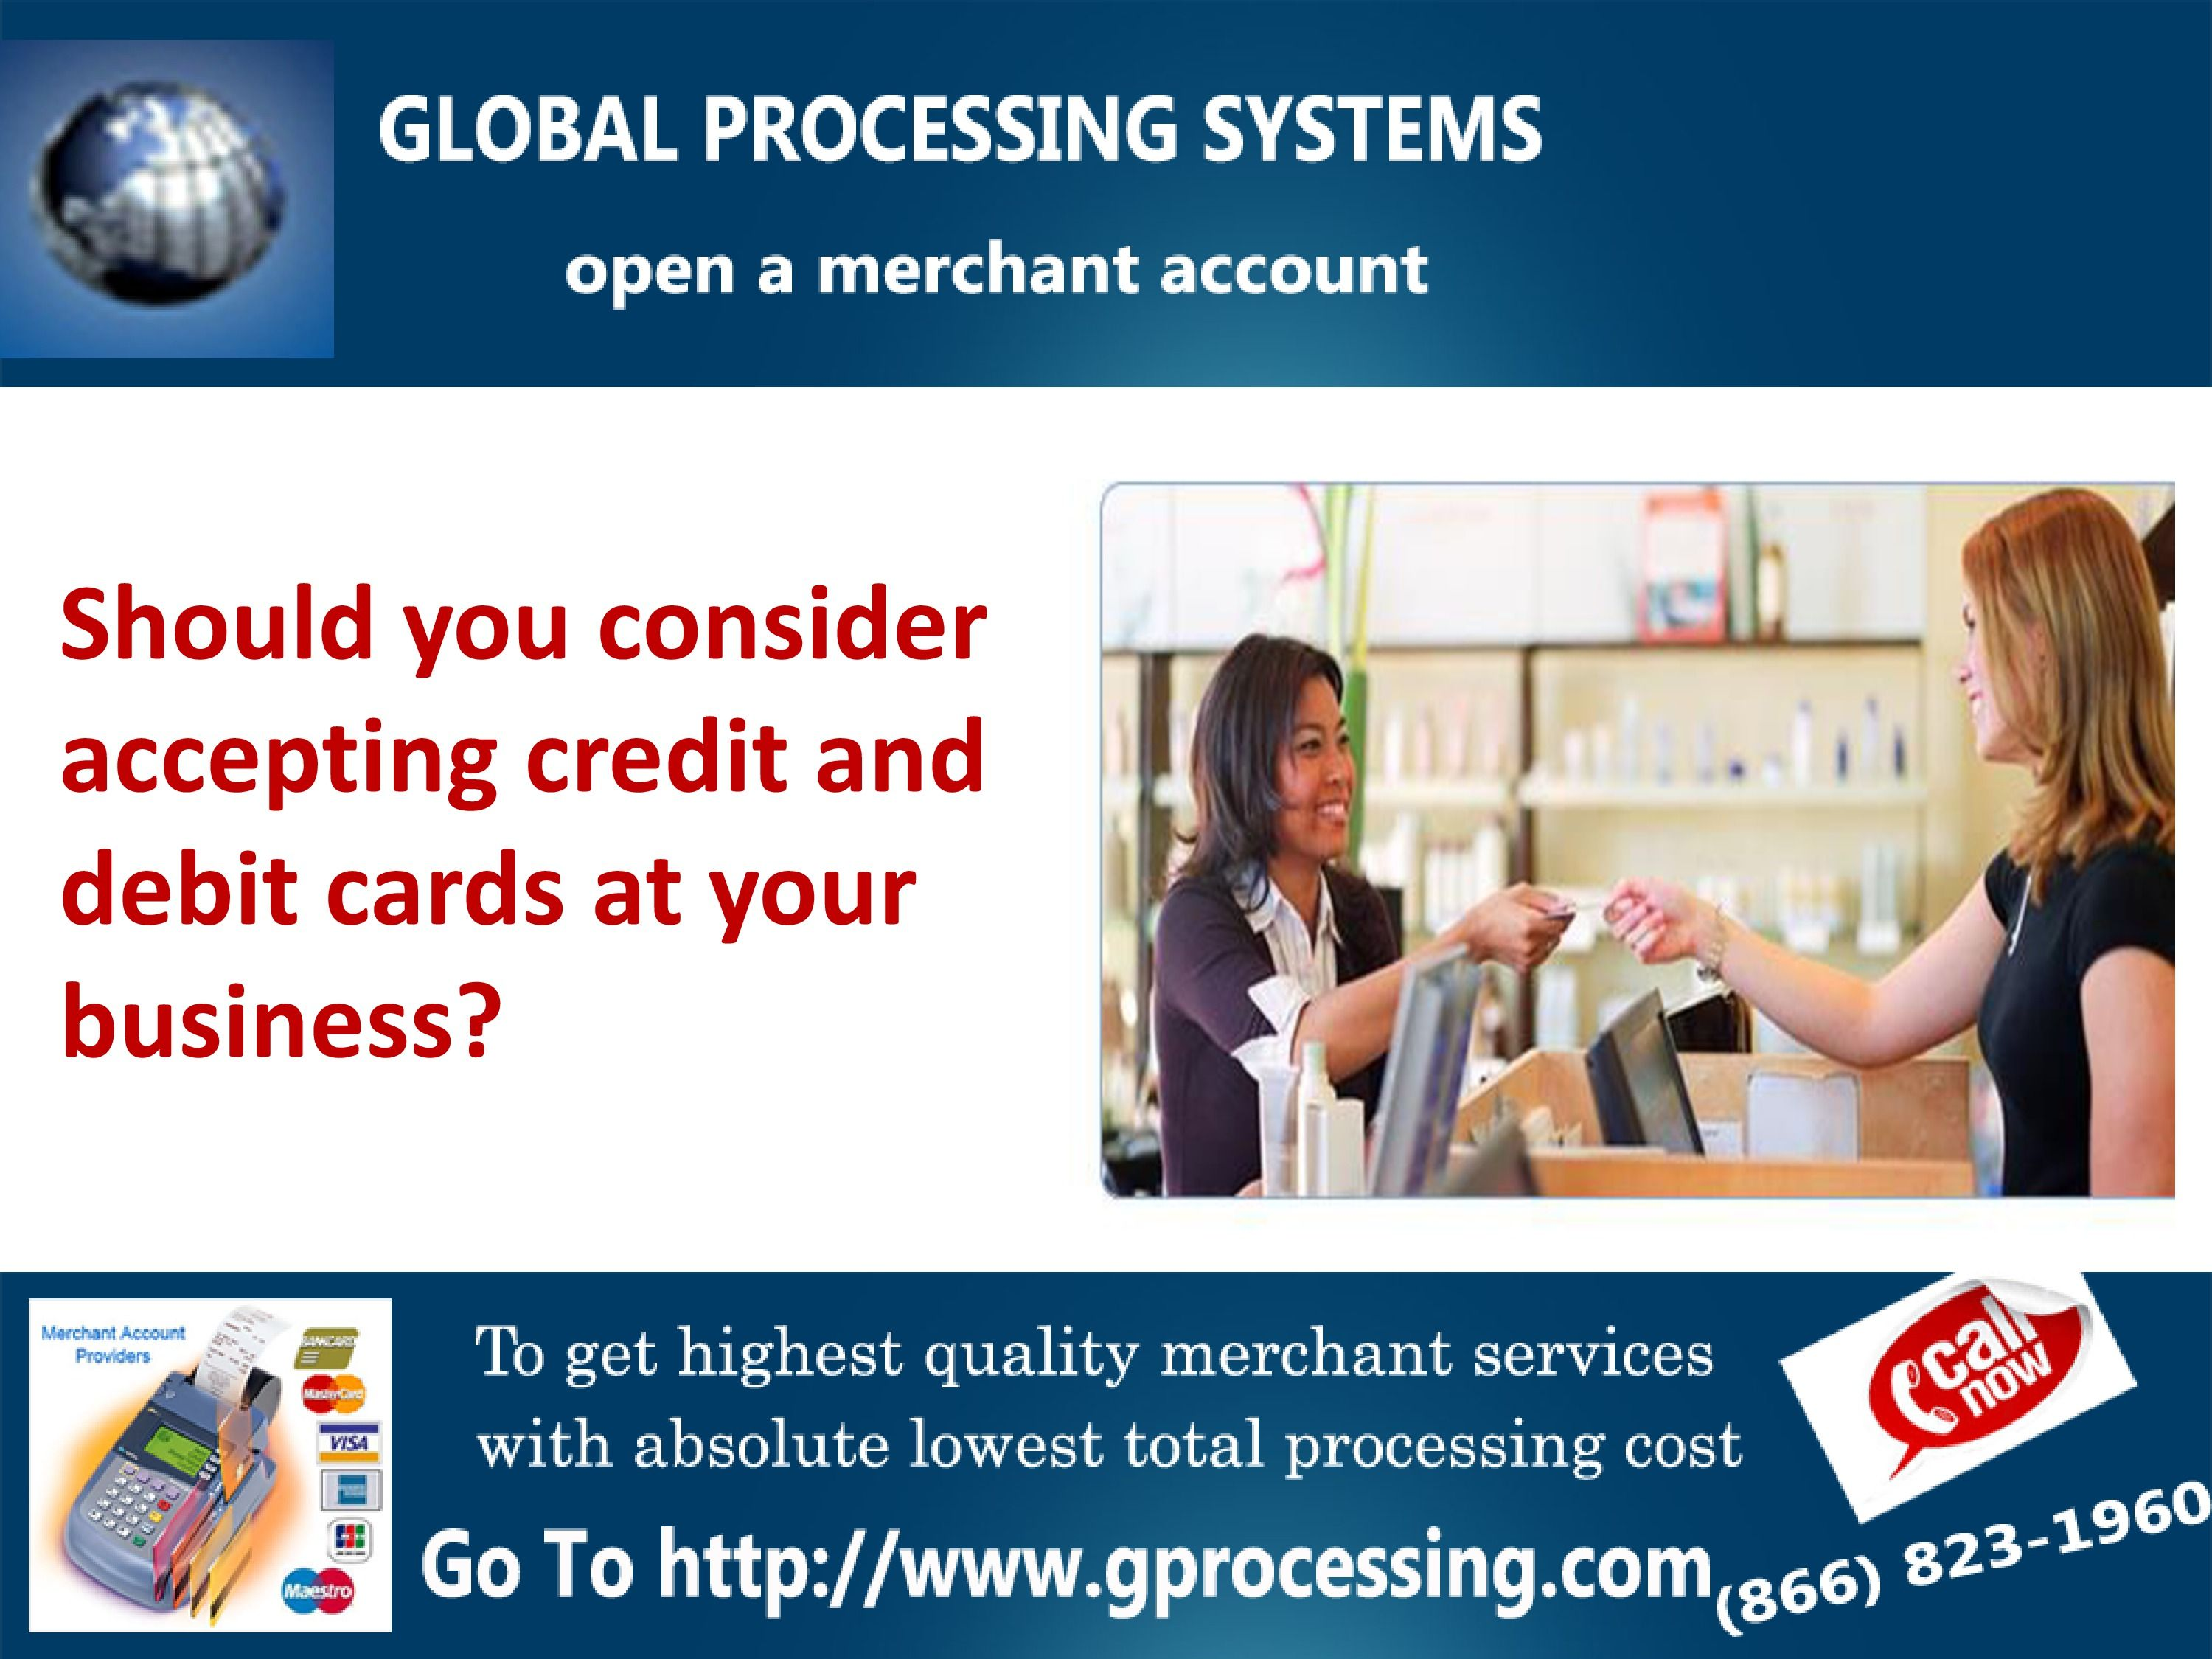 card adult merchant processing credit without Account